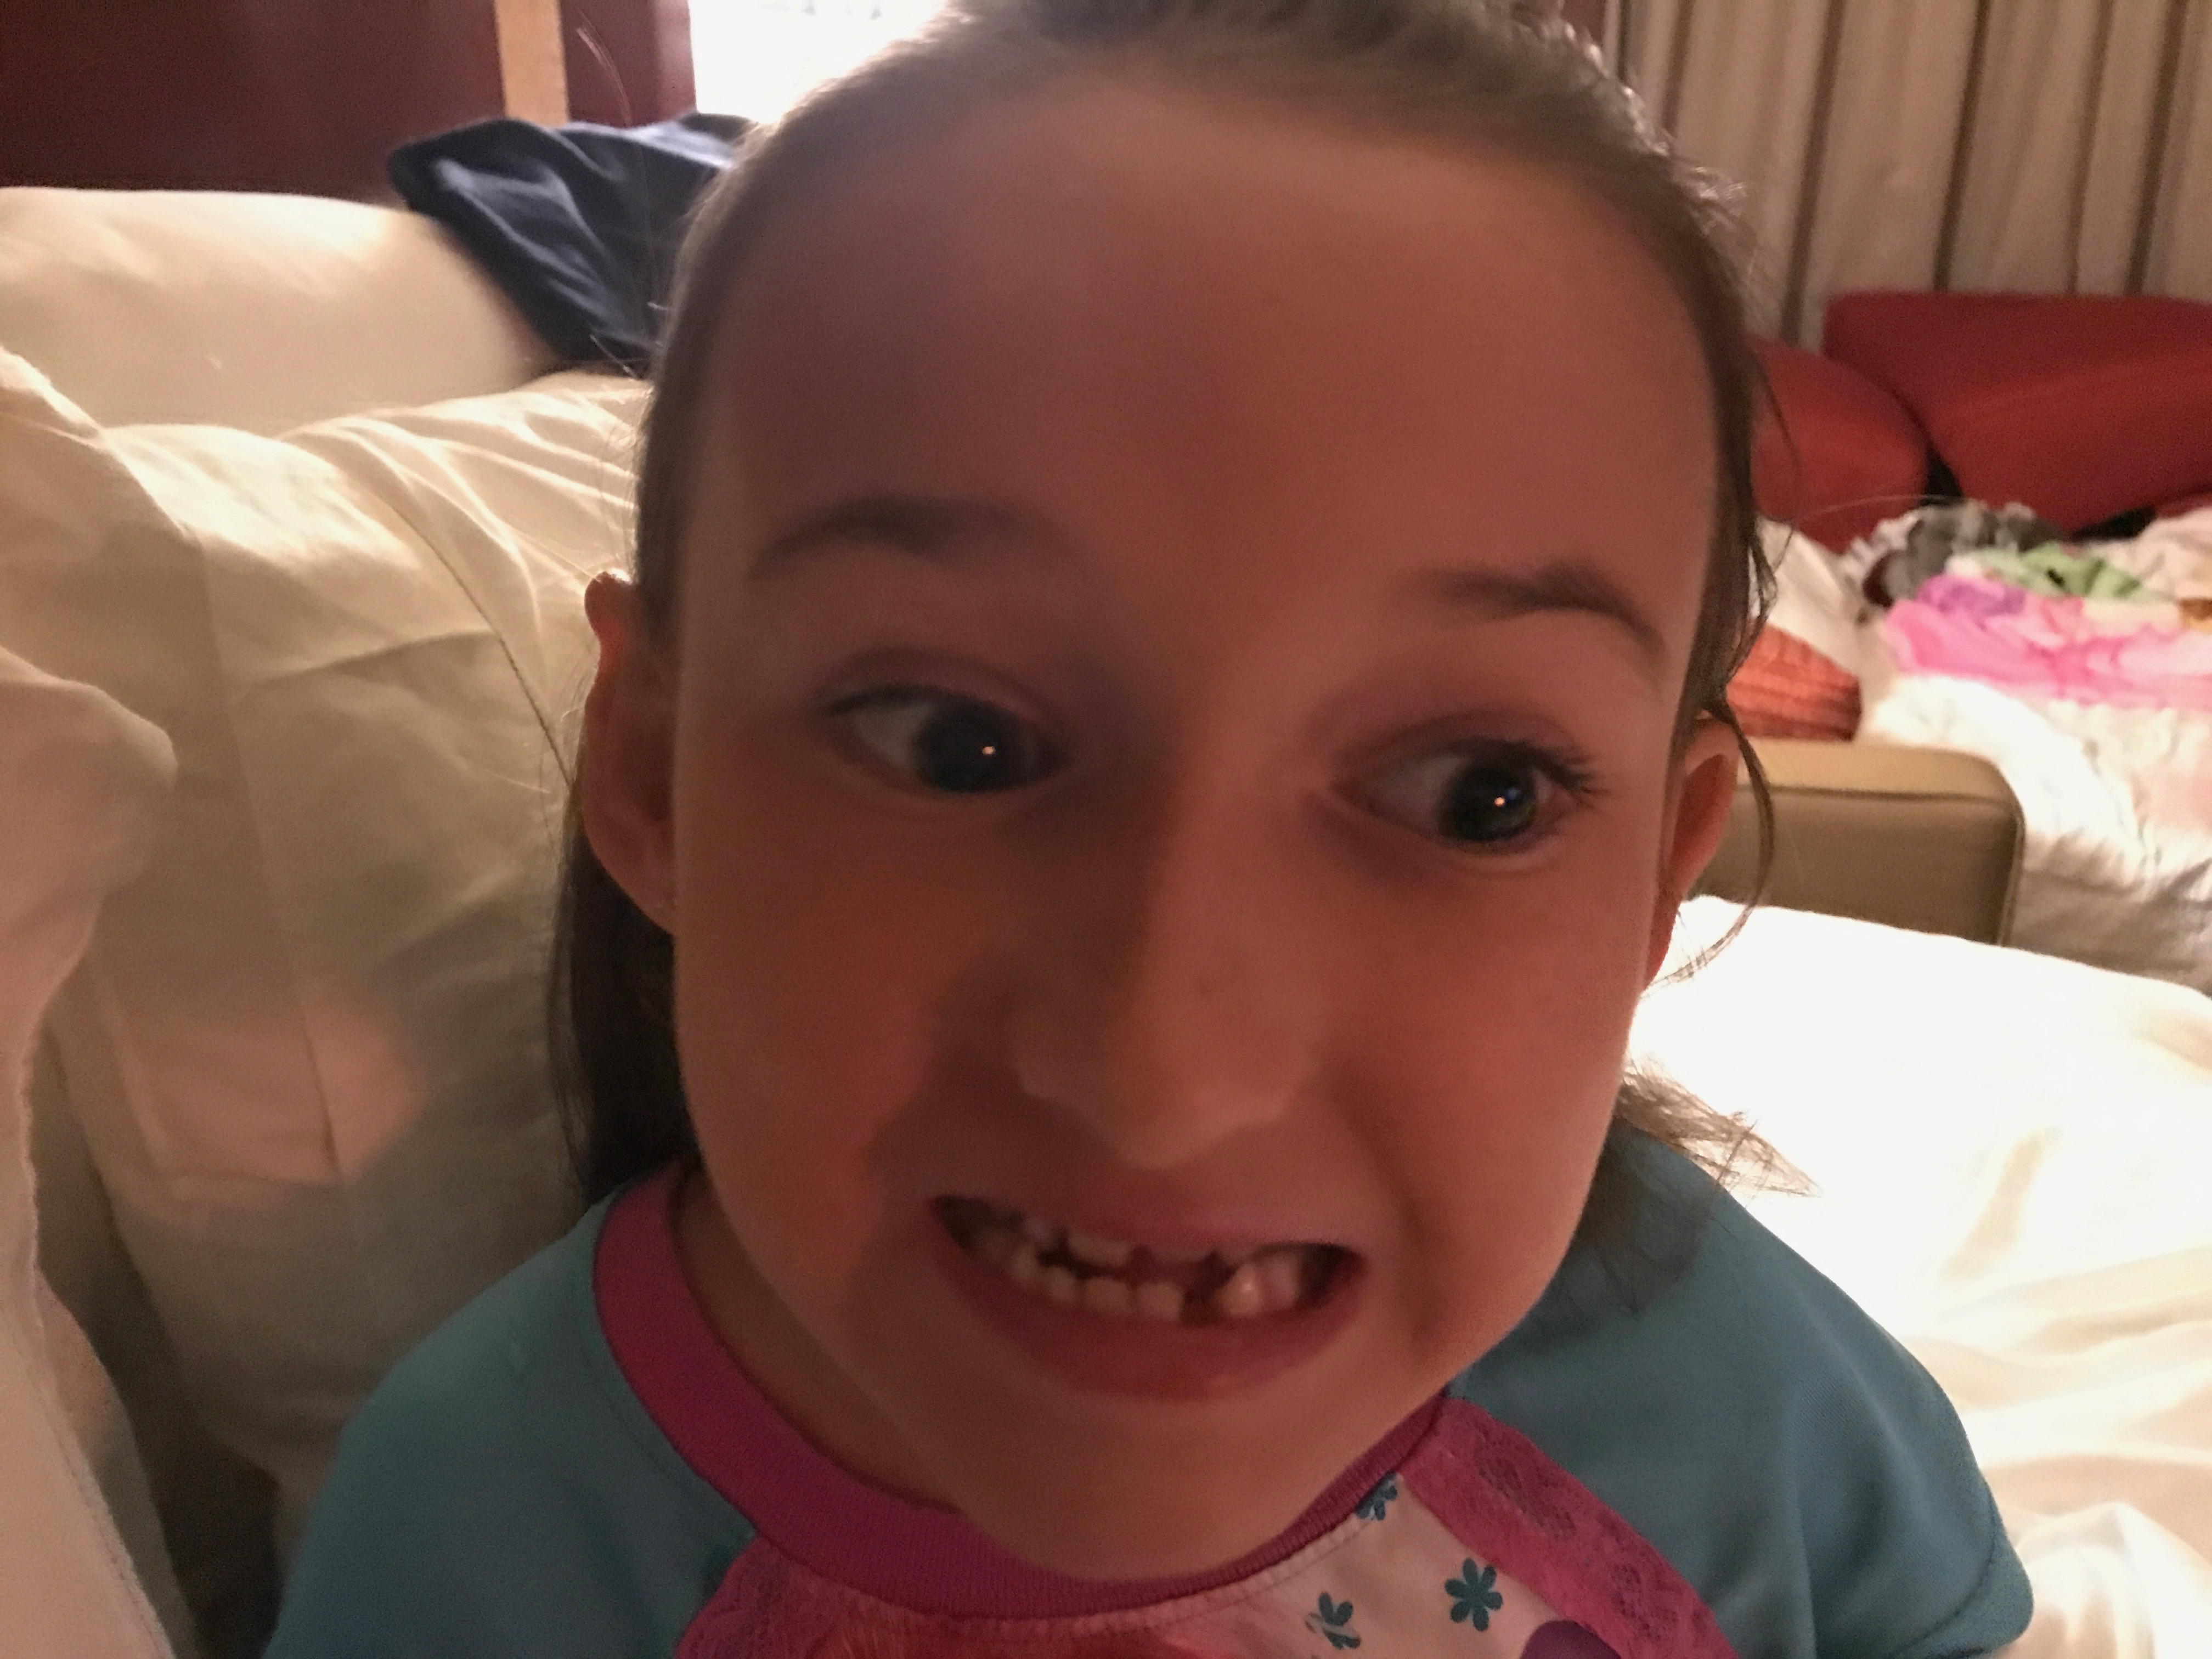 She lost her 5th Tooth on Disney's Magic Kingdom Splash Mountain